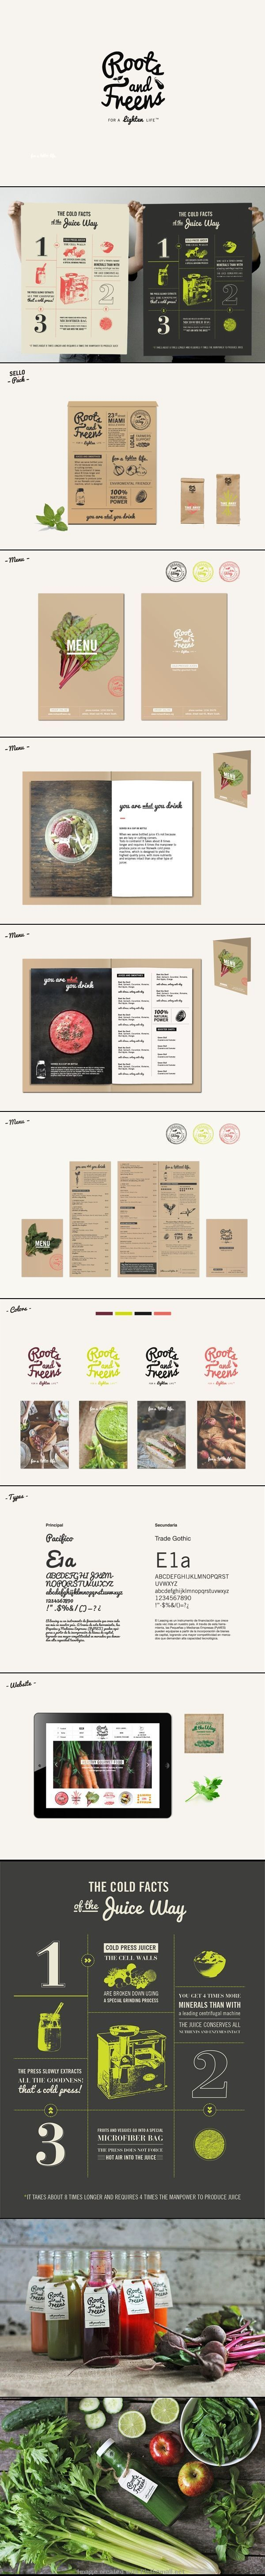 Roots & Freens restaurant identity and branding. I love this modern menu and farm stand inspired #stationary. #branding